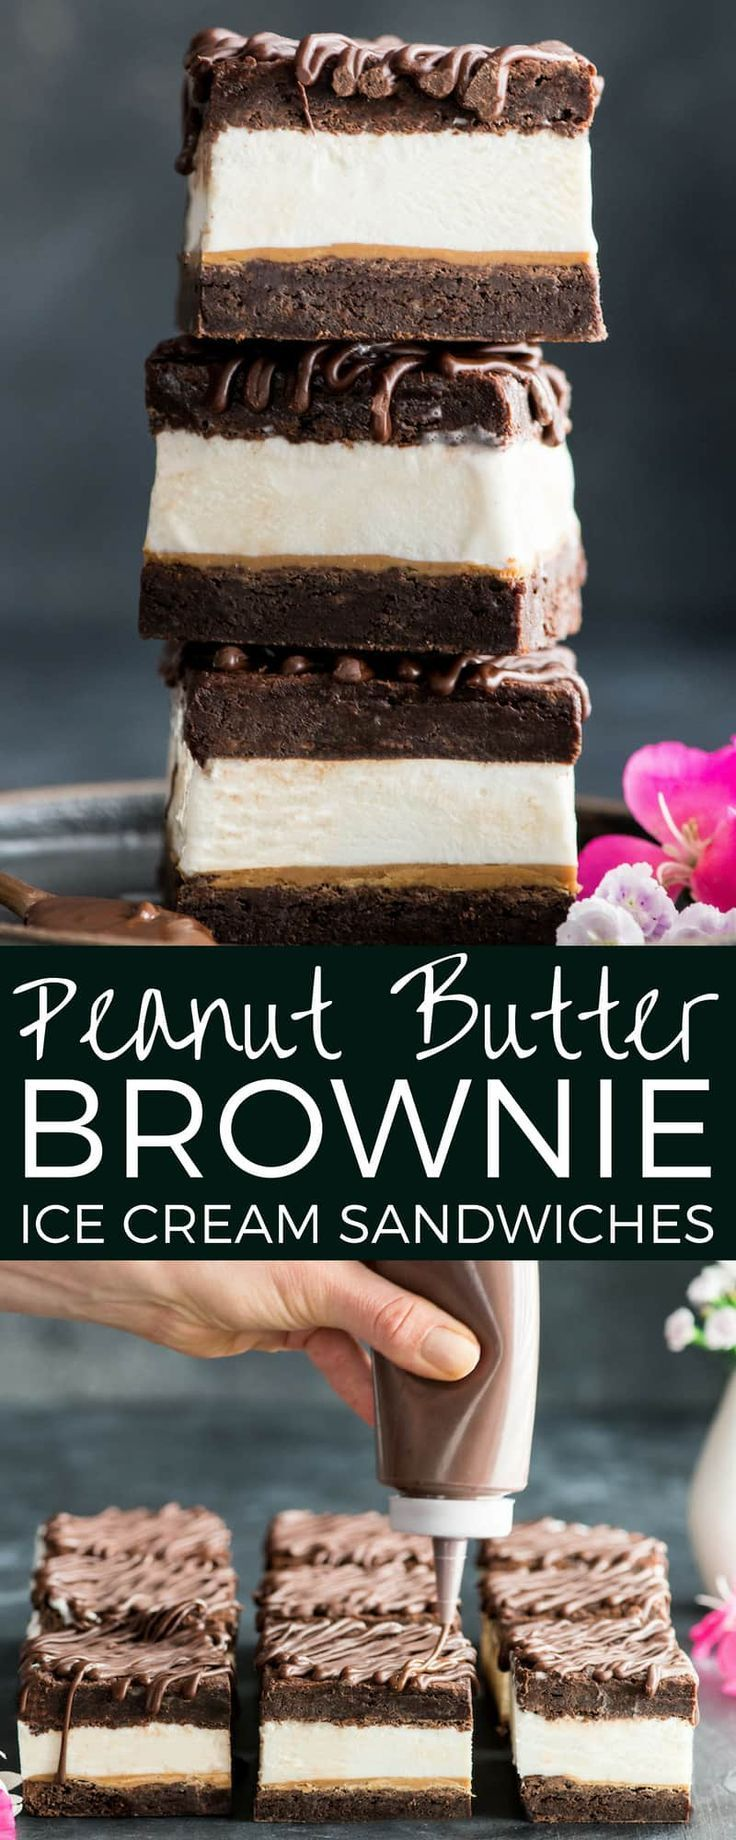 Peanut Butter Brownie Ice Cream Sandwich Recipe is the perfect summer dessert! Layers of ice cream and peanut butter are sandwiched between two rich, flourless peanut butter brownies in a easy, homemade recipe that will be the hit at any party or barbecue! They are gluten-free with an easy dairy-free option!  ...